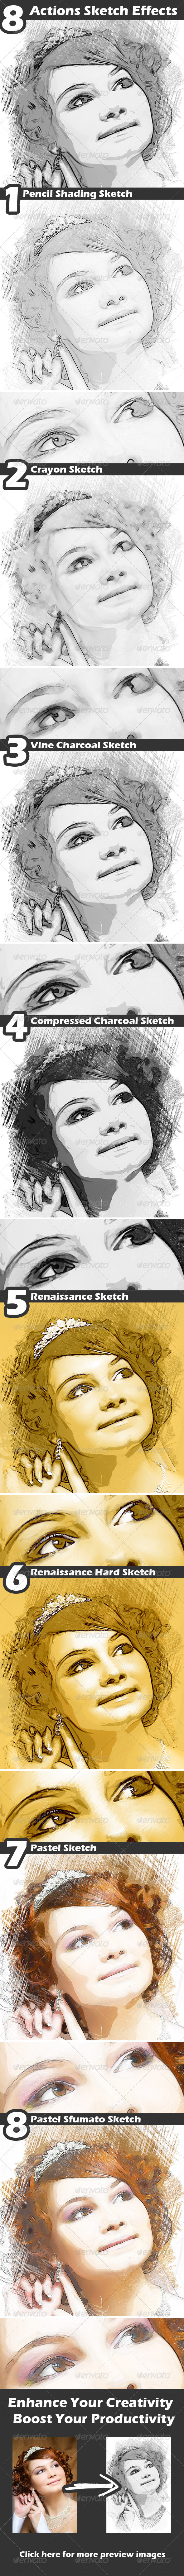 GraphicRiver Actions Sketch Effects 4441739